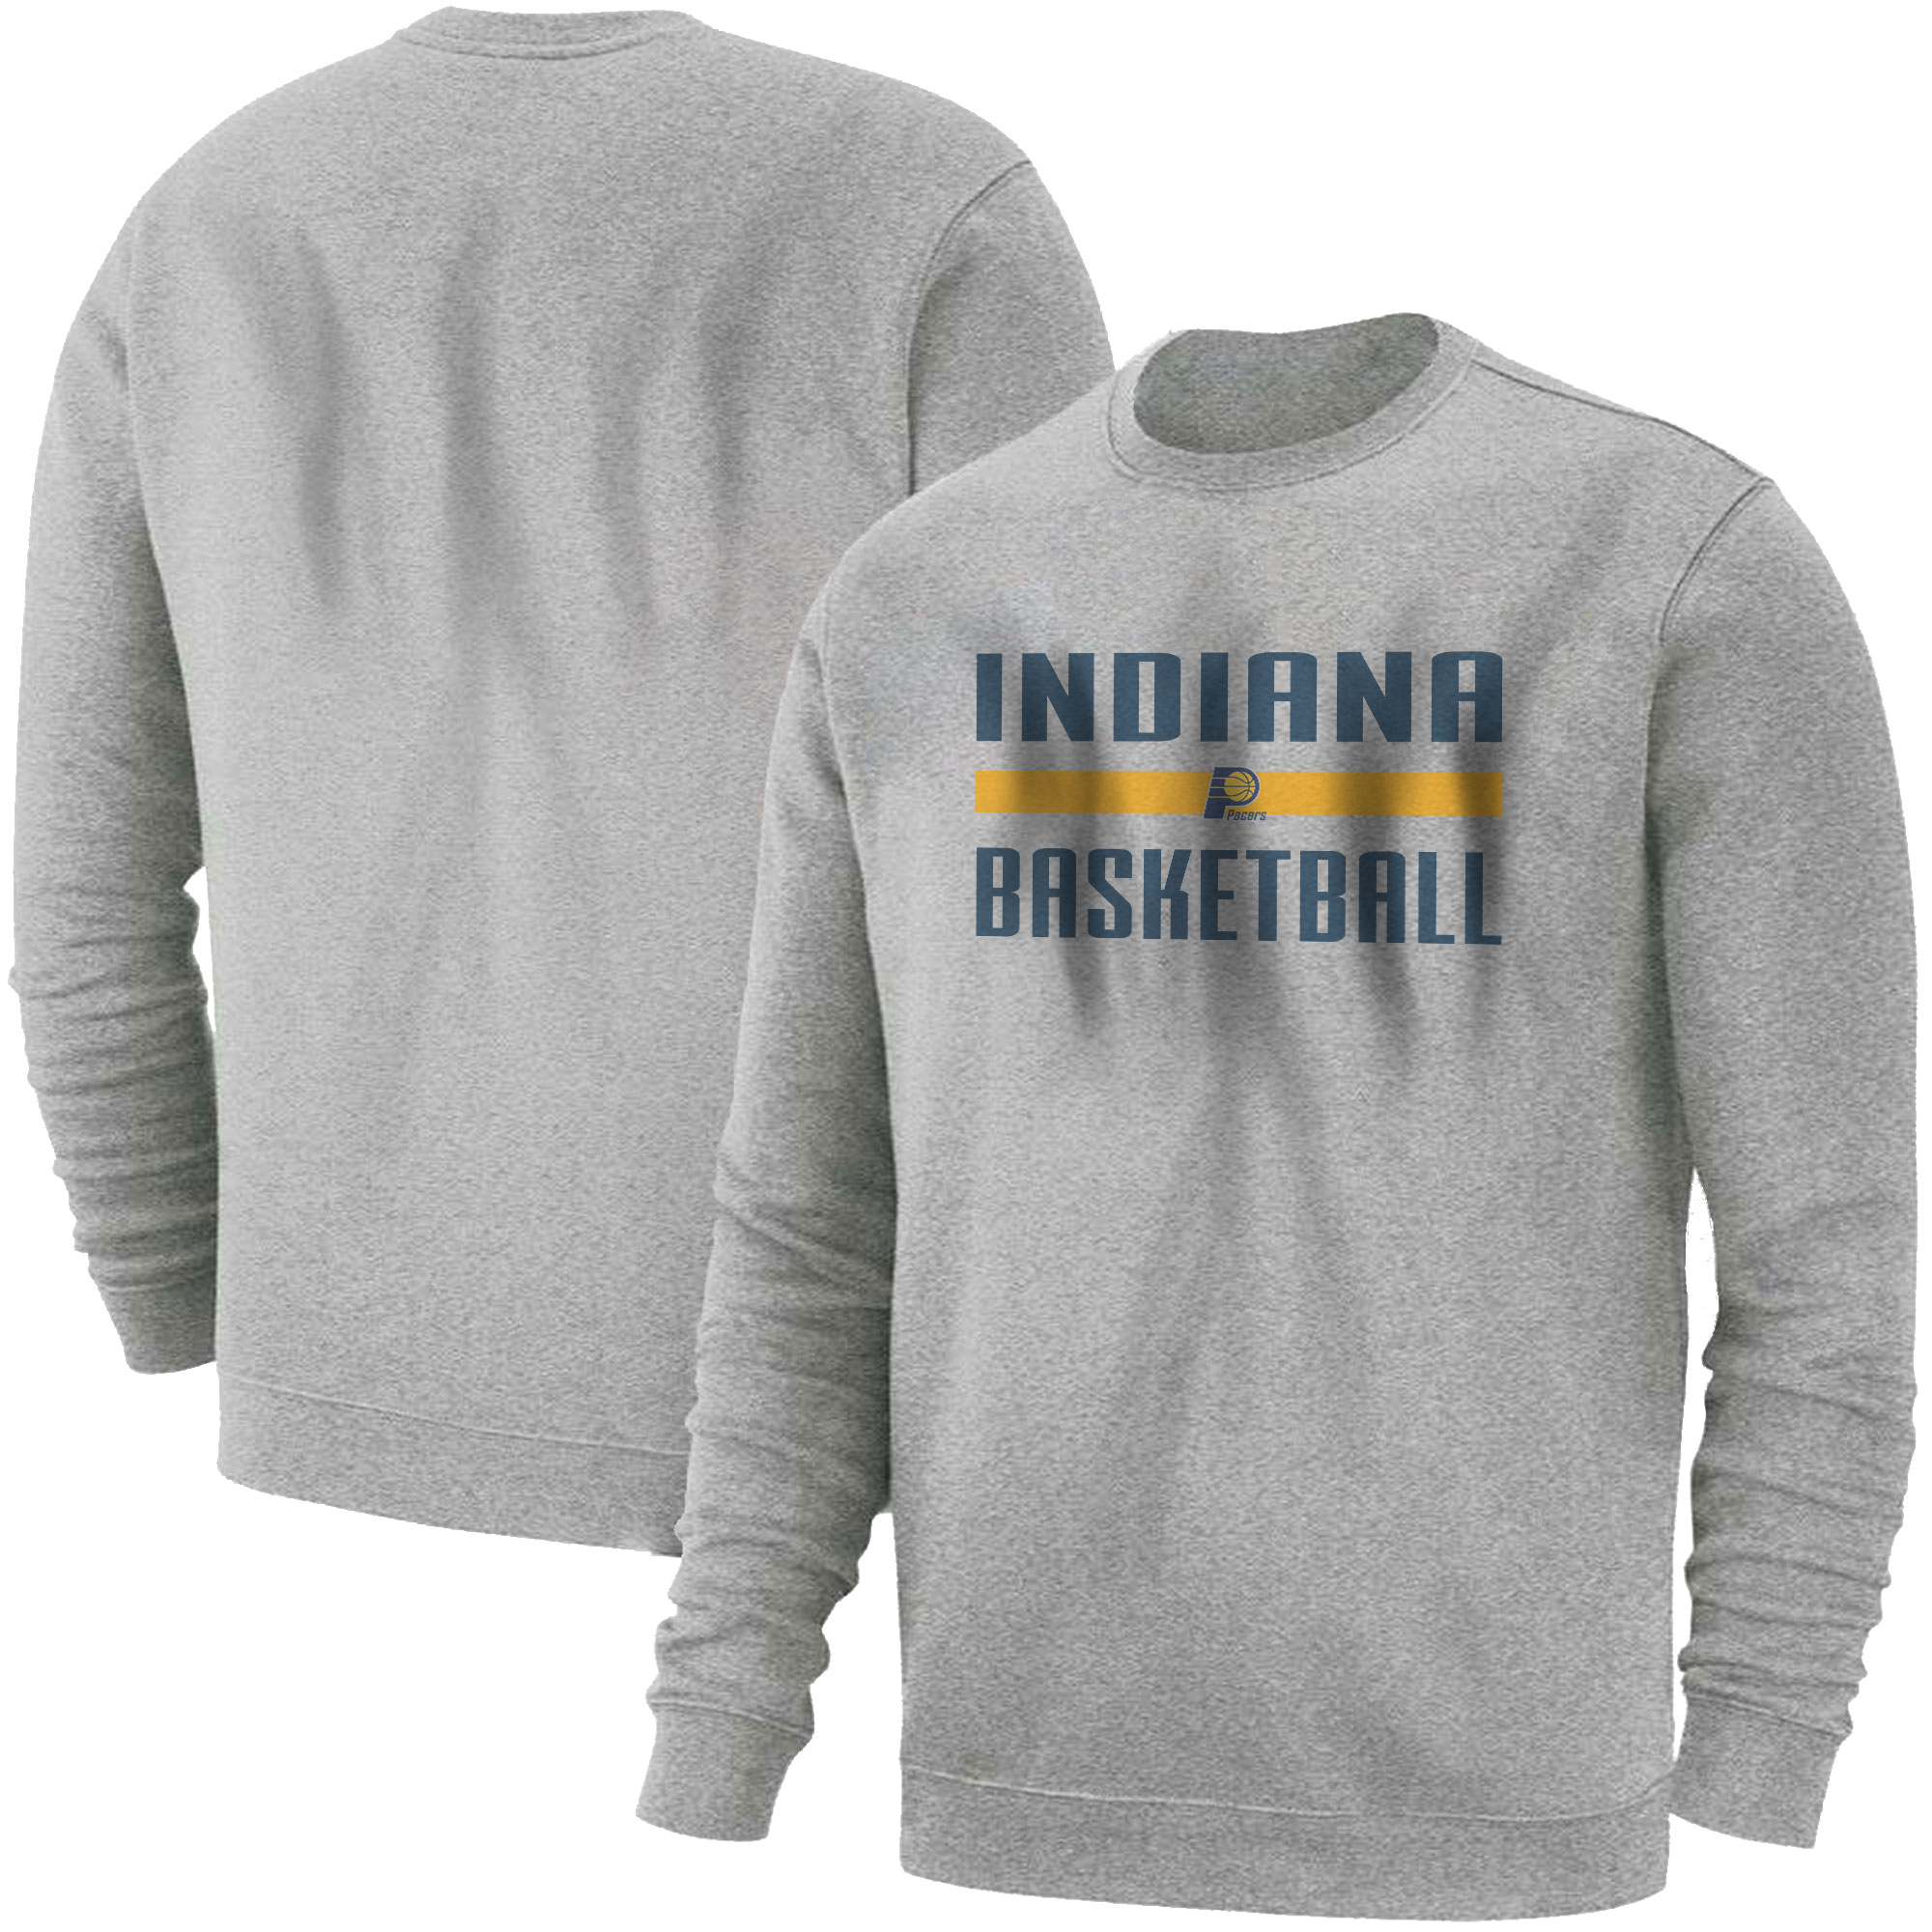 Indiana Basketball Basic (BSC-GRY-NP-indiana-bsktbll-516)